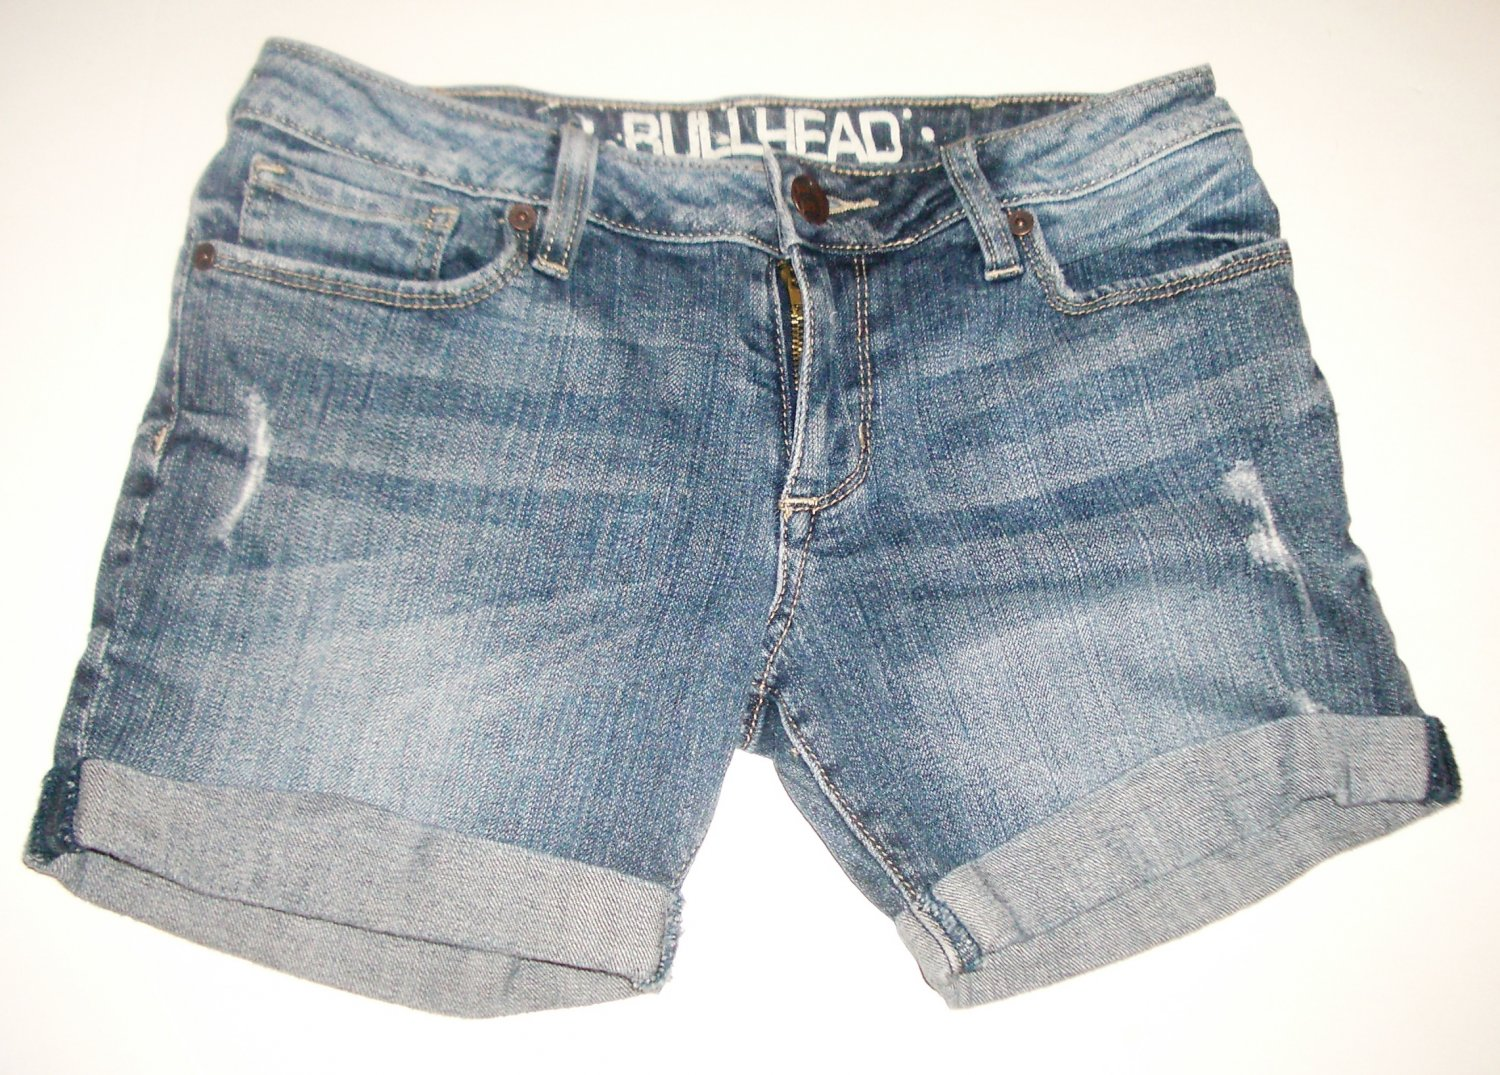 Bullhead Double Rolled Short Denim Jean Shorts Low Rise Distressed Sz 0 Pacsun